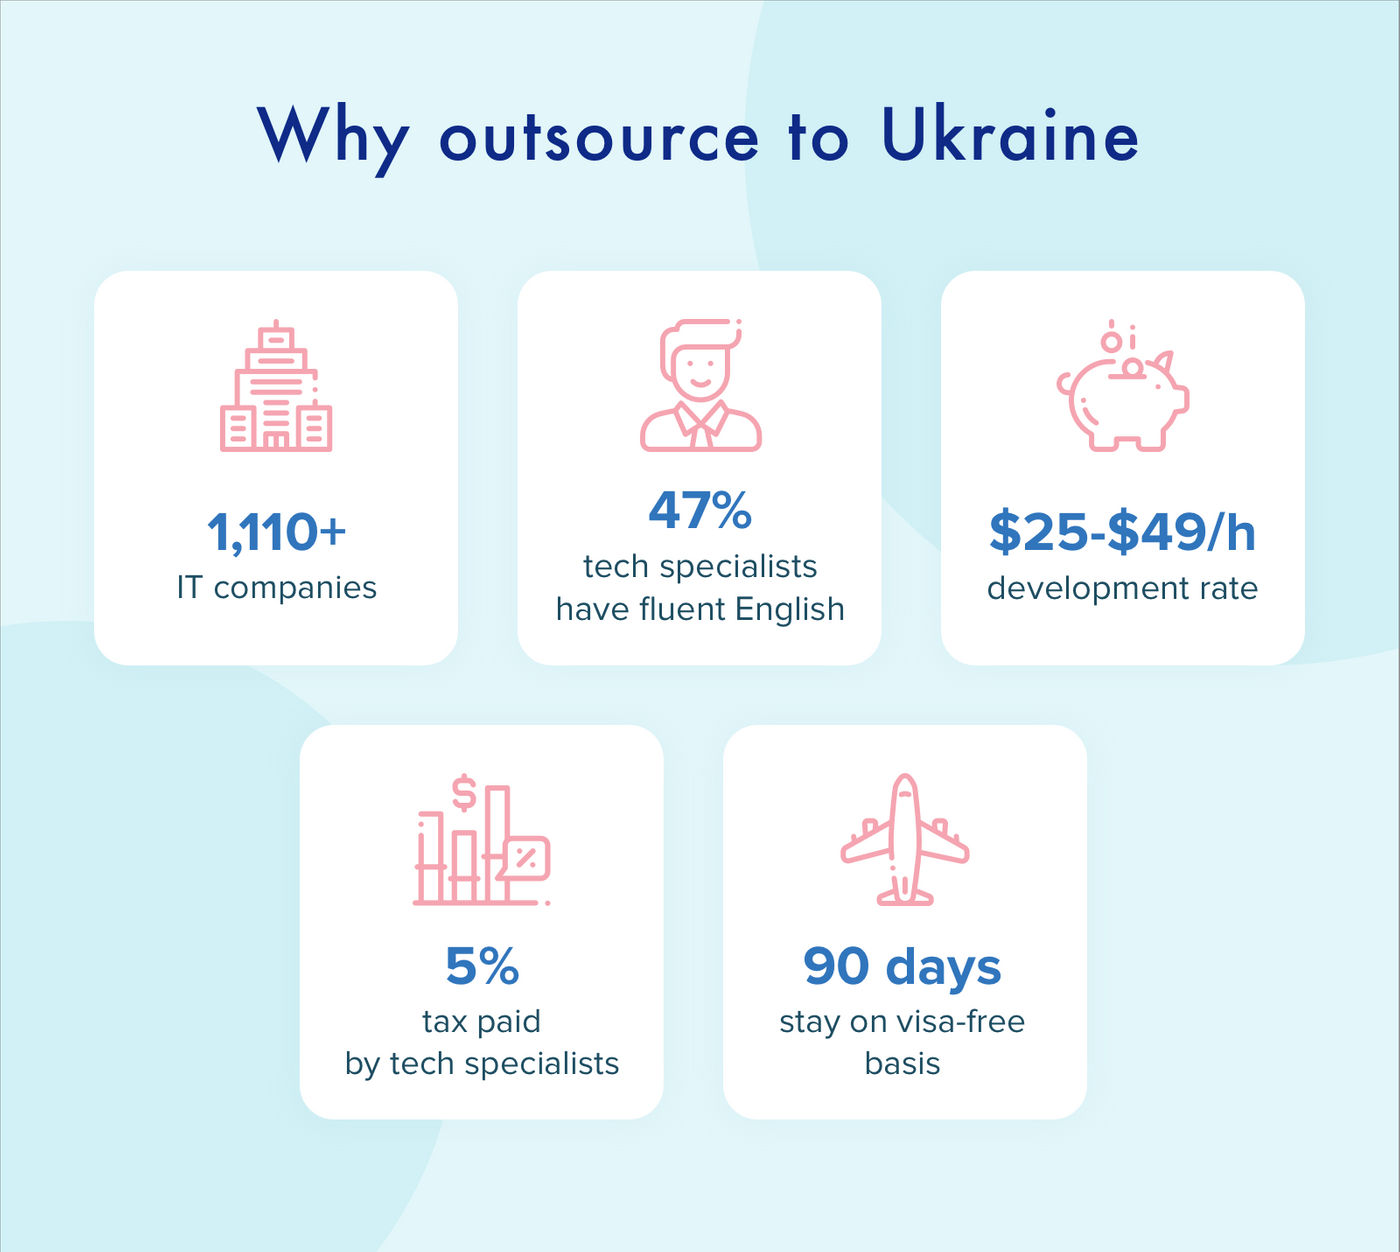 Why outsource to Ukraine